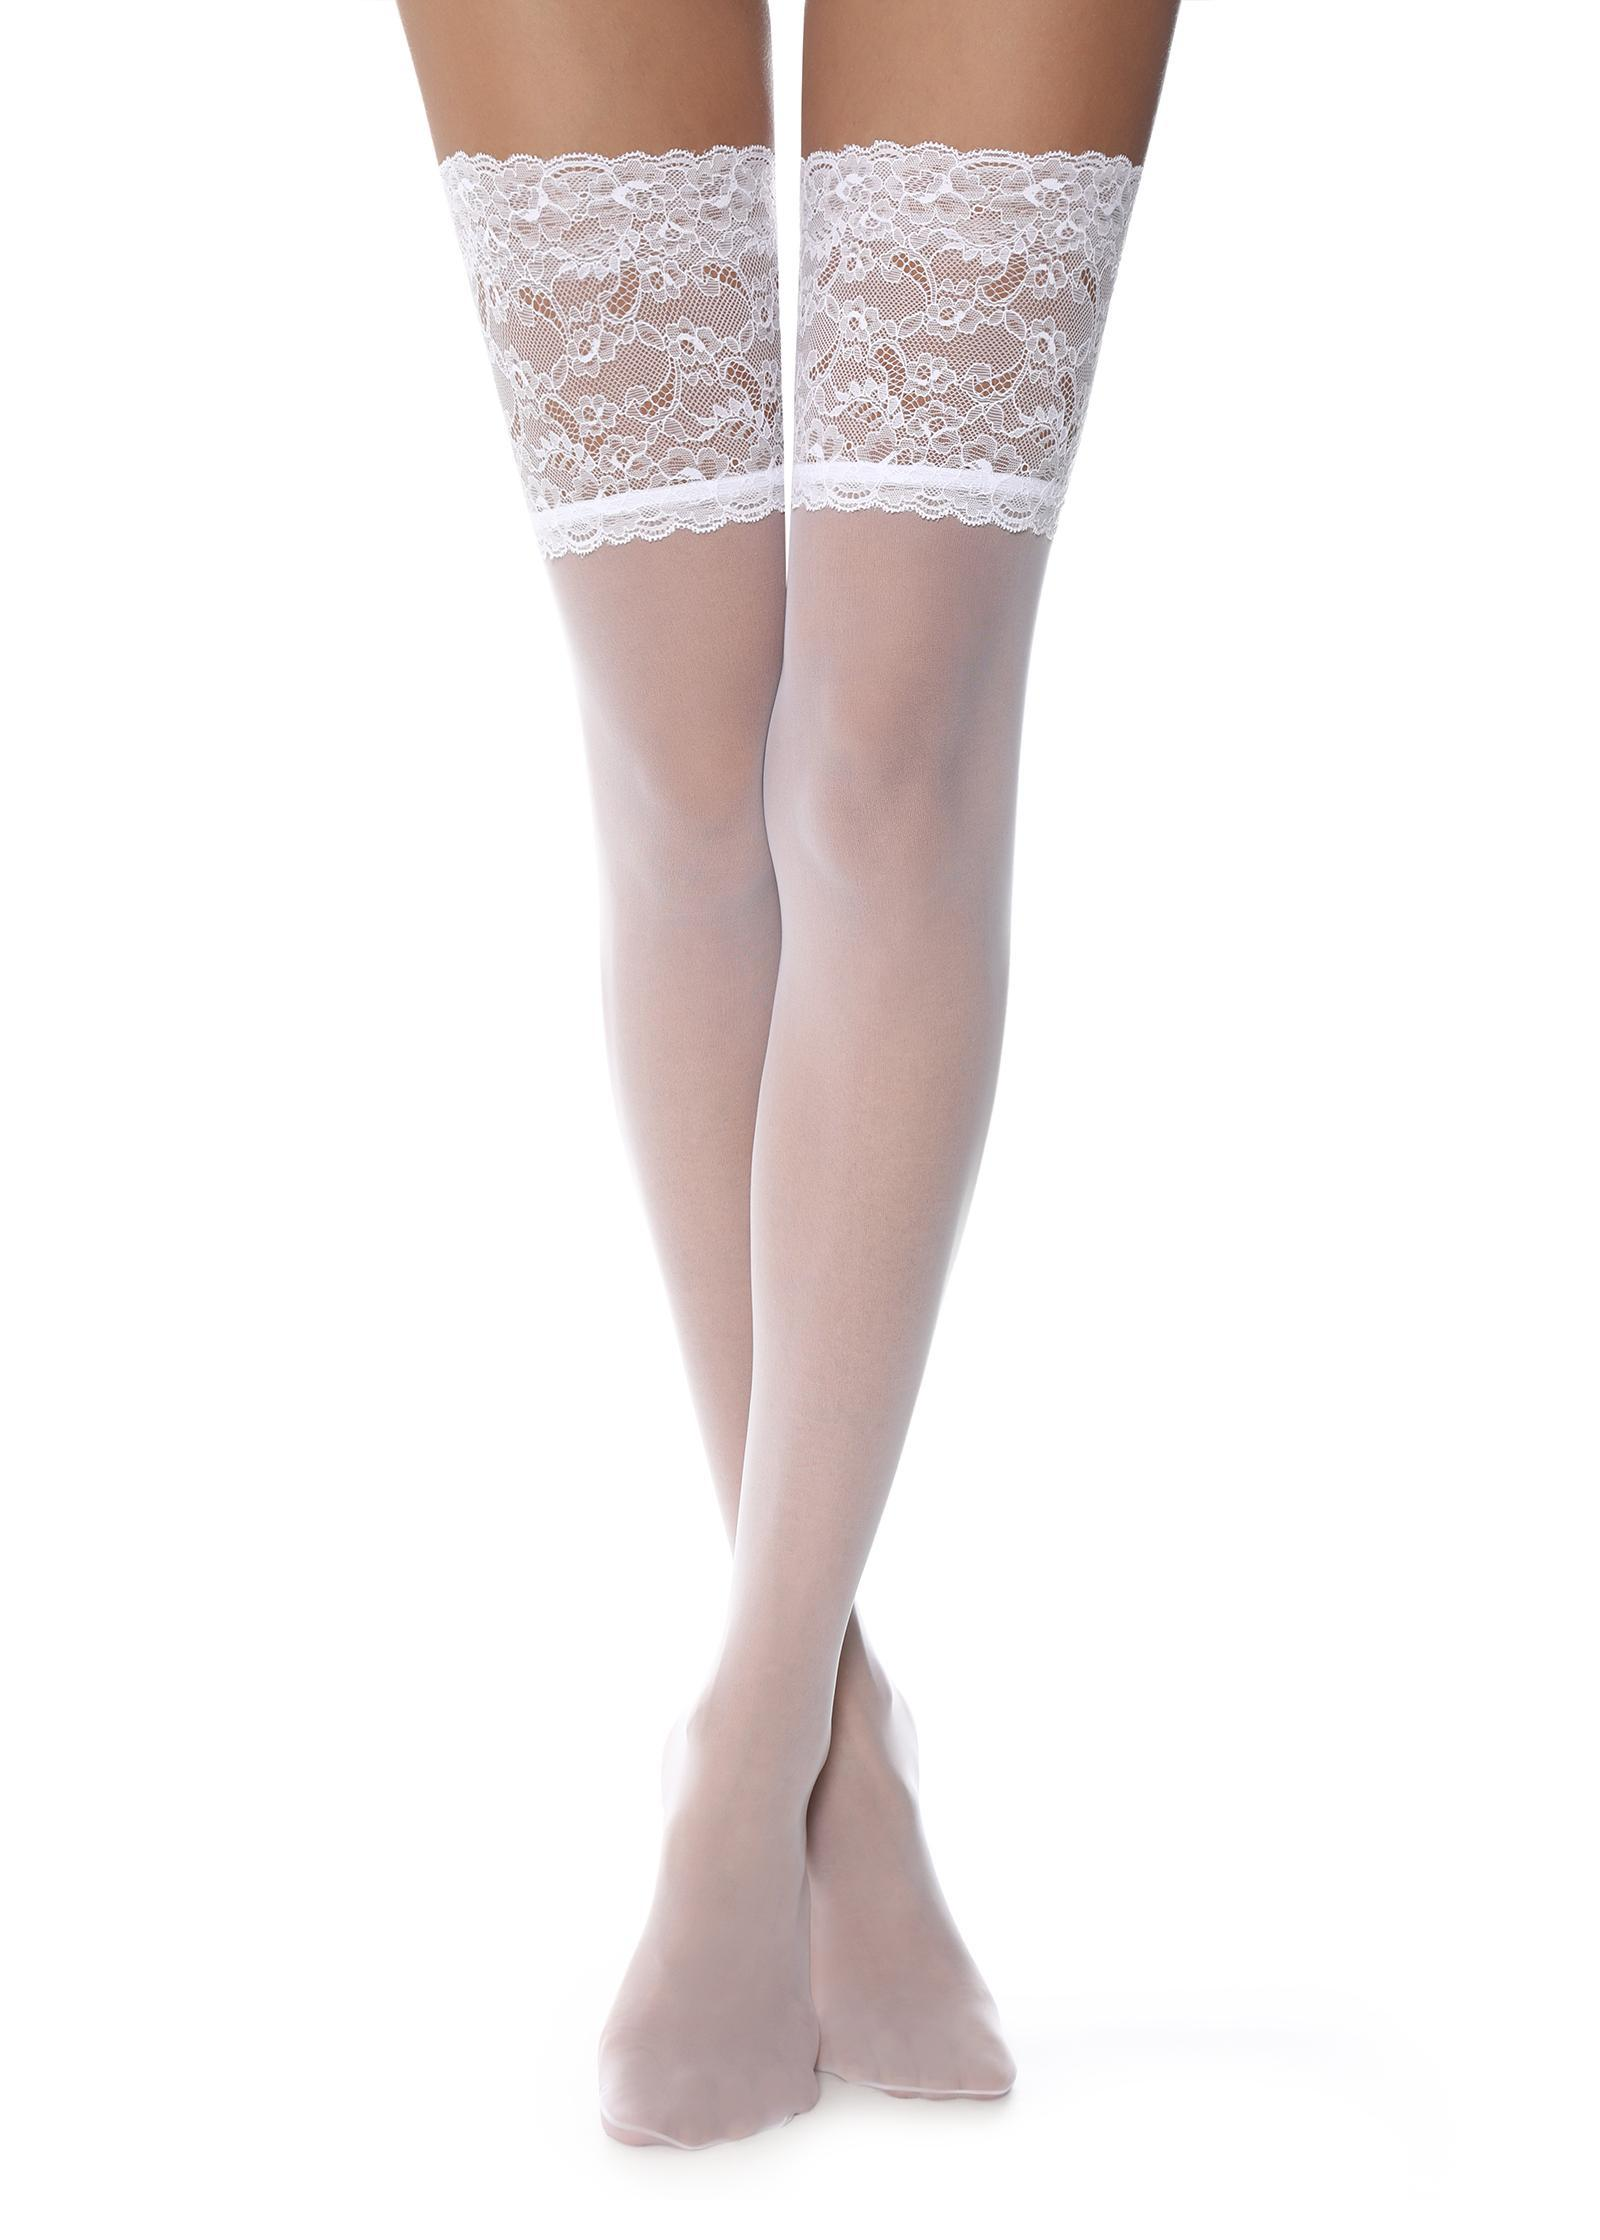 184609ae732ed Calzedonia 20 Denier Opaque Thigh-highs in White - Lyst